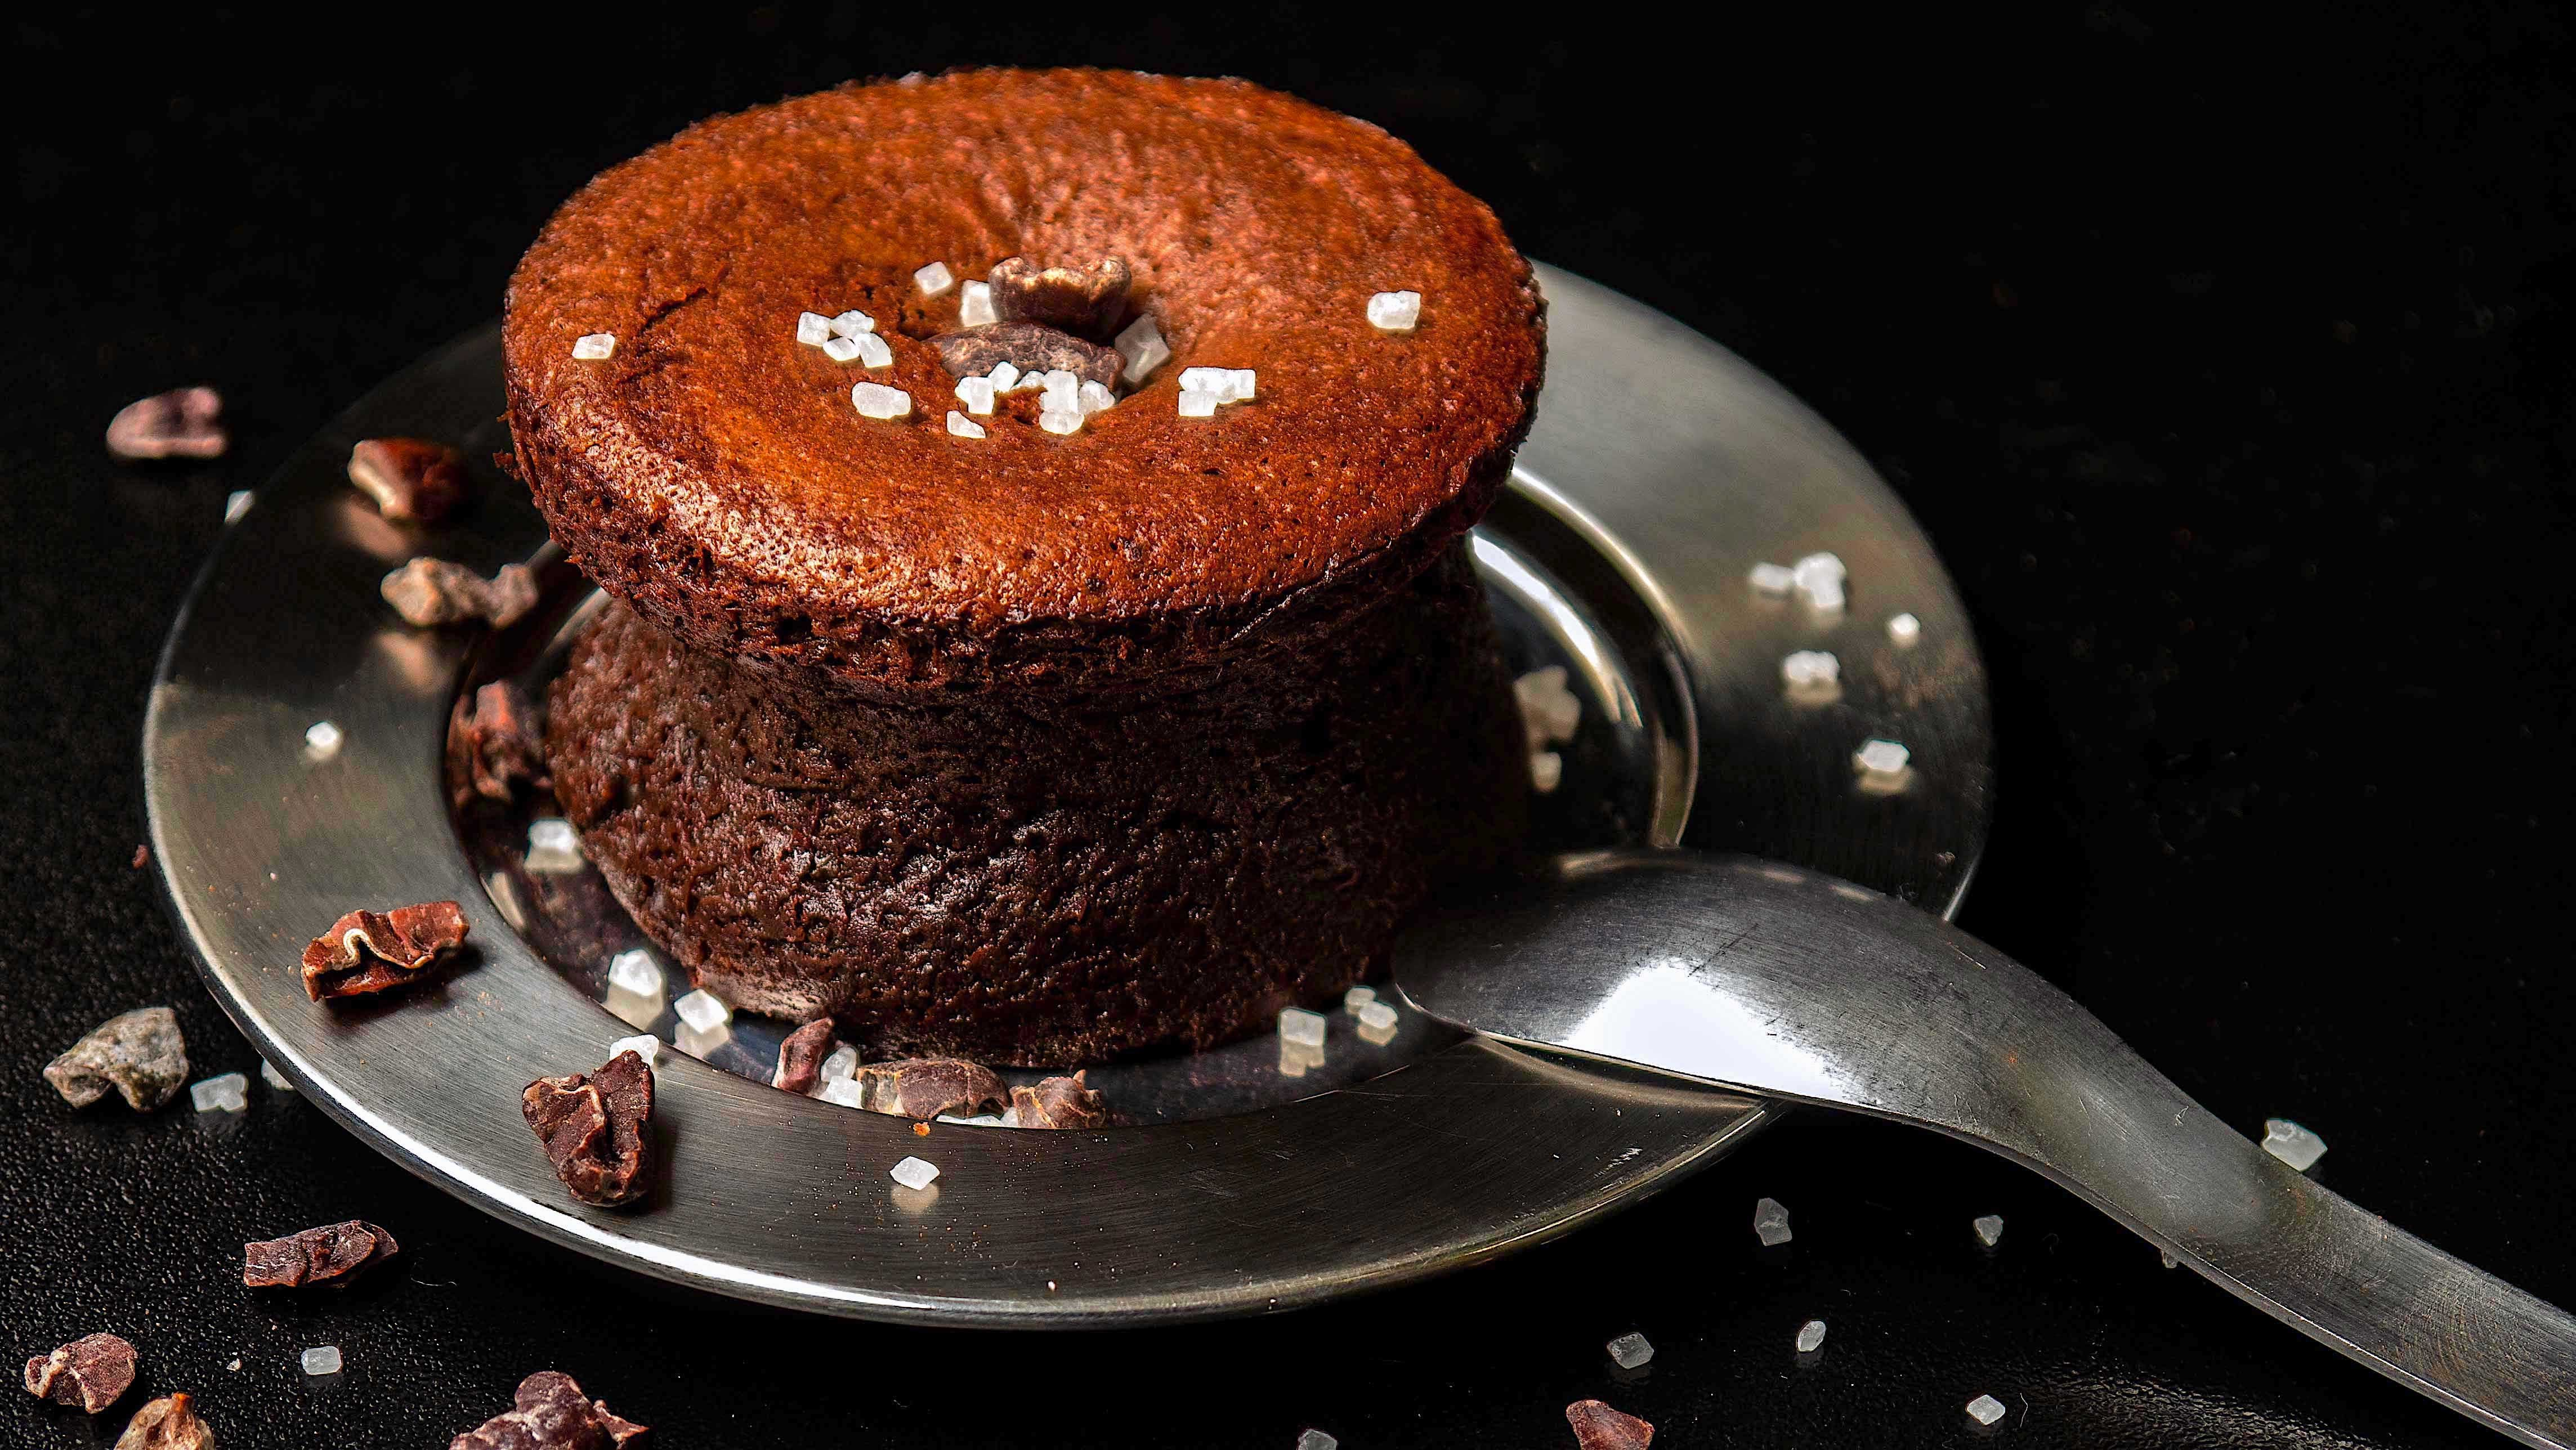 creamy & soft-centered chocolate cakes